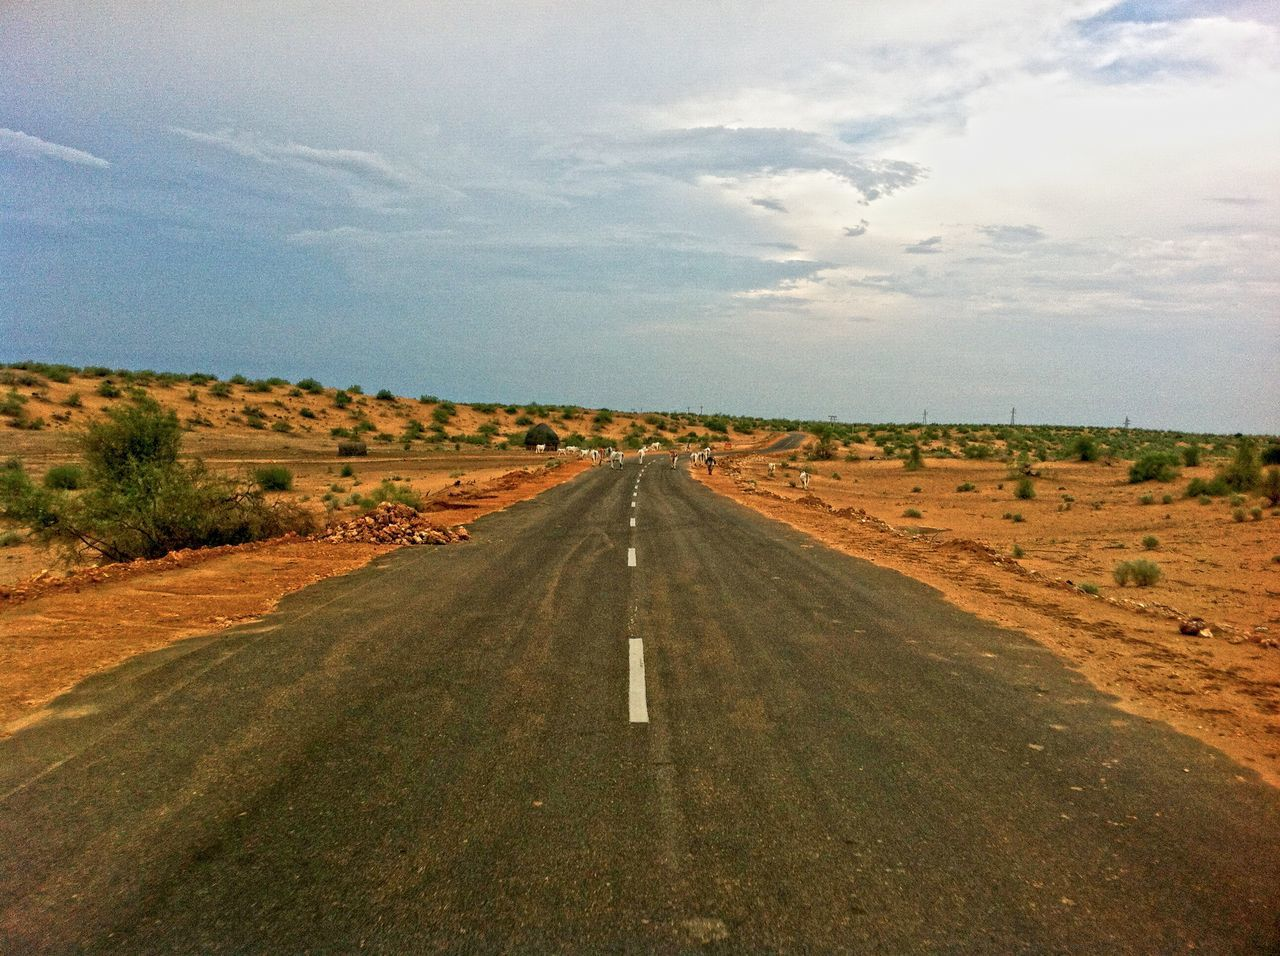 sky, road, landscape, the way forward, cloud - sky, no people, transportation, scenics, outdoors, day, nature, beauty in nature